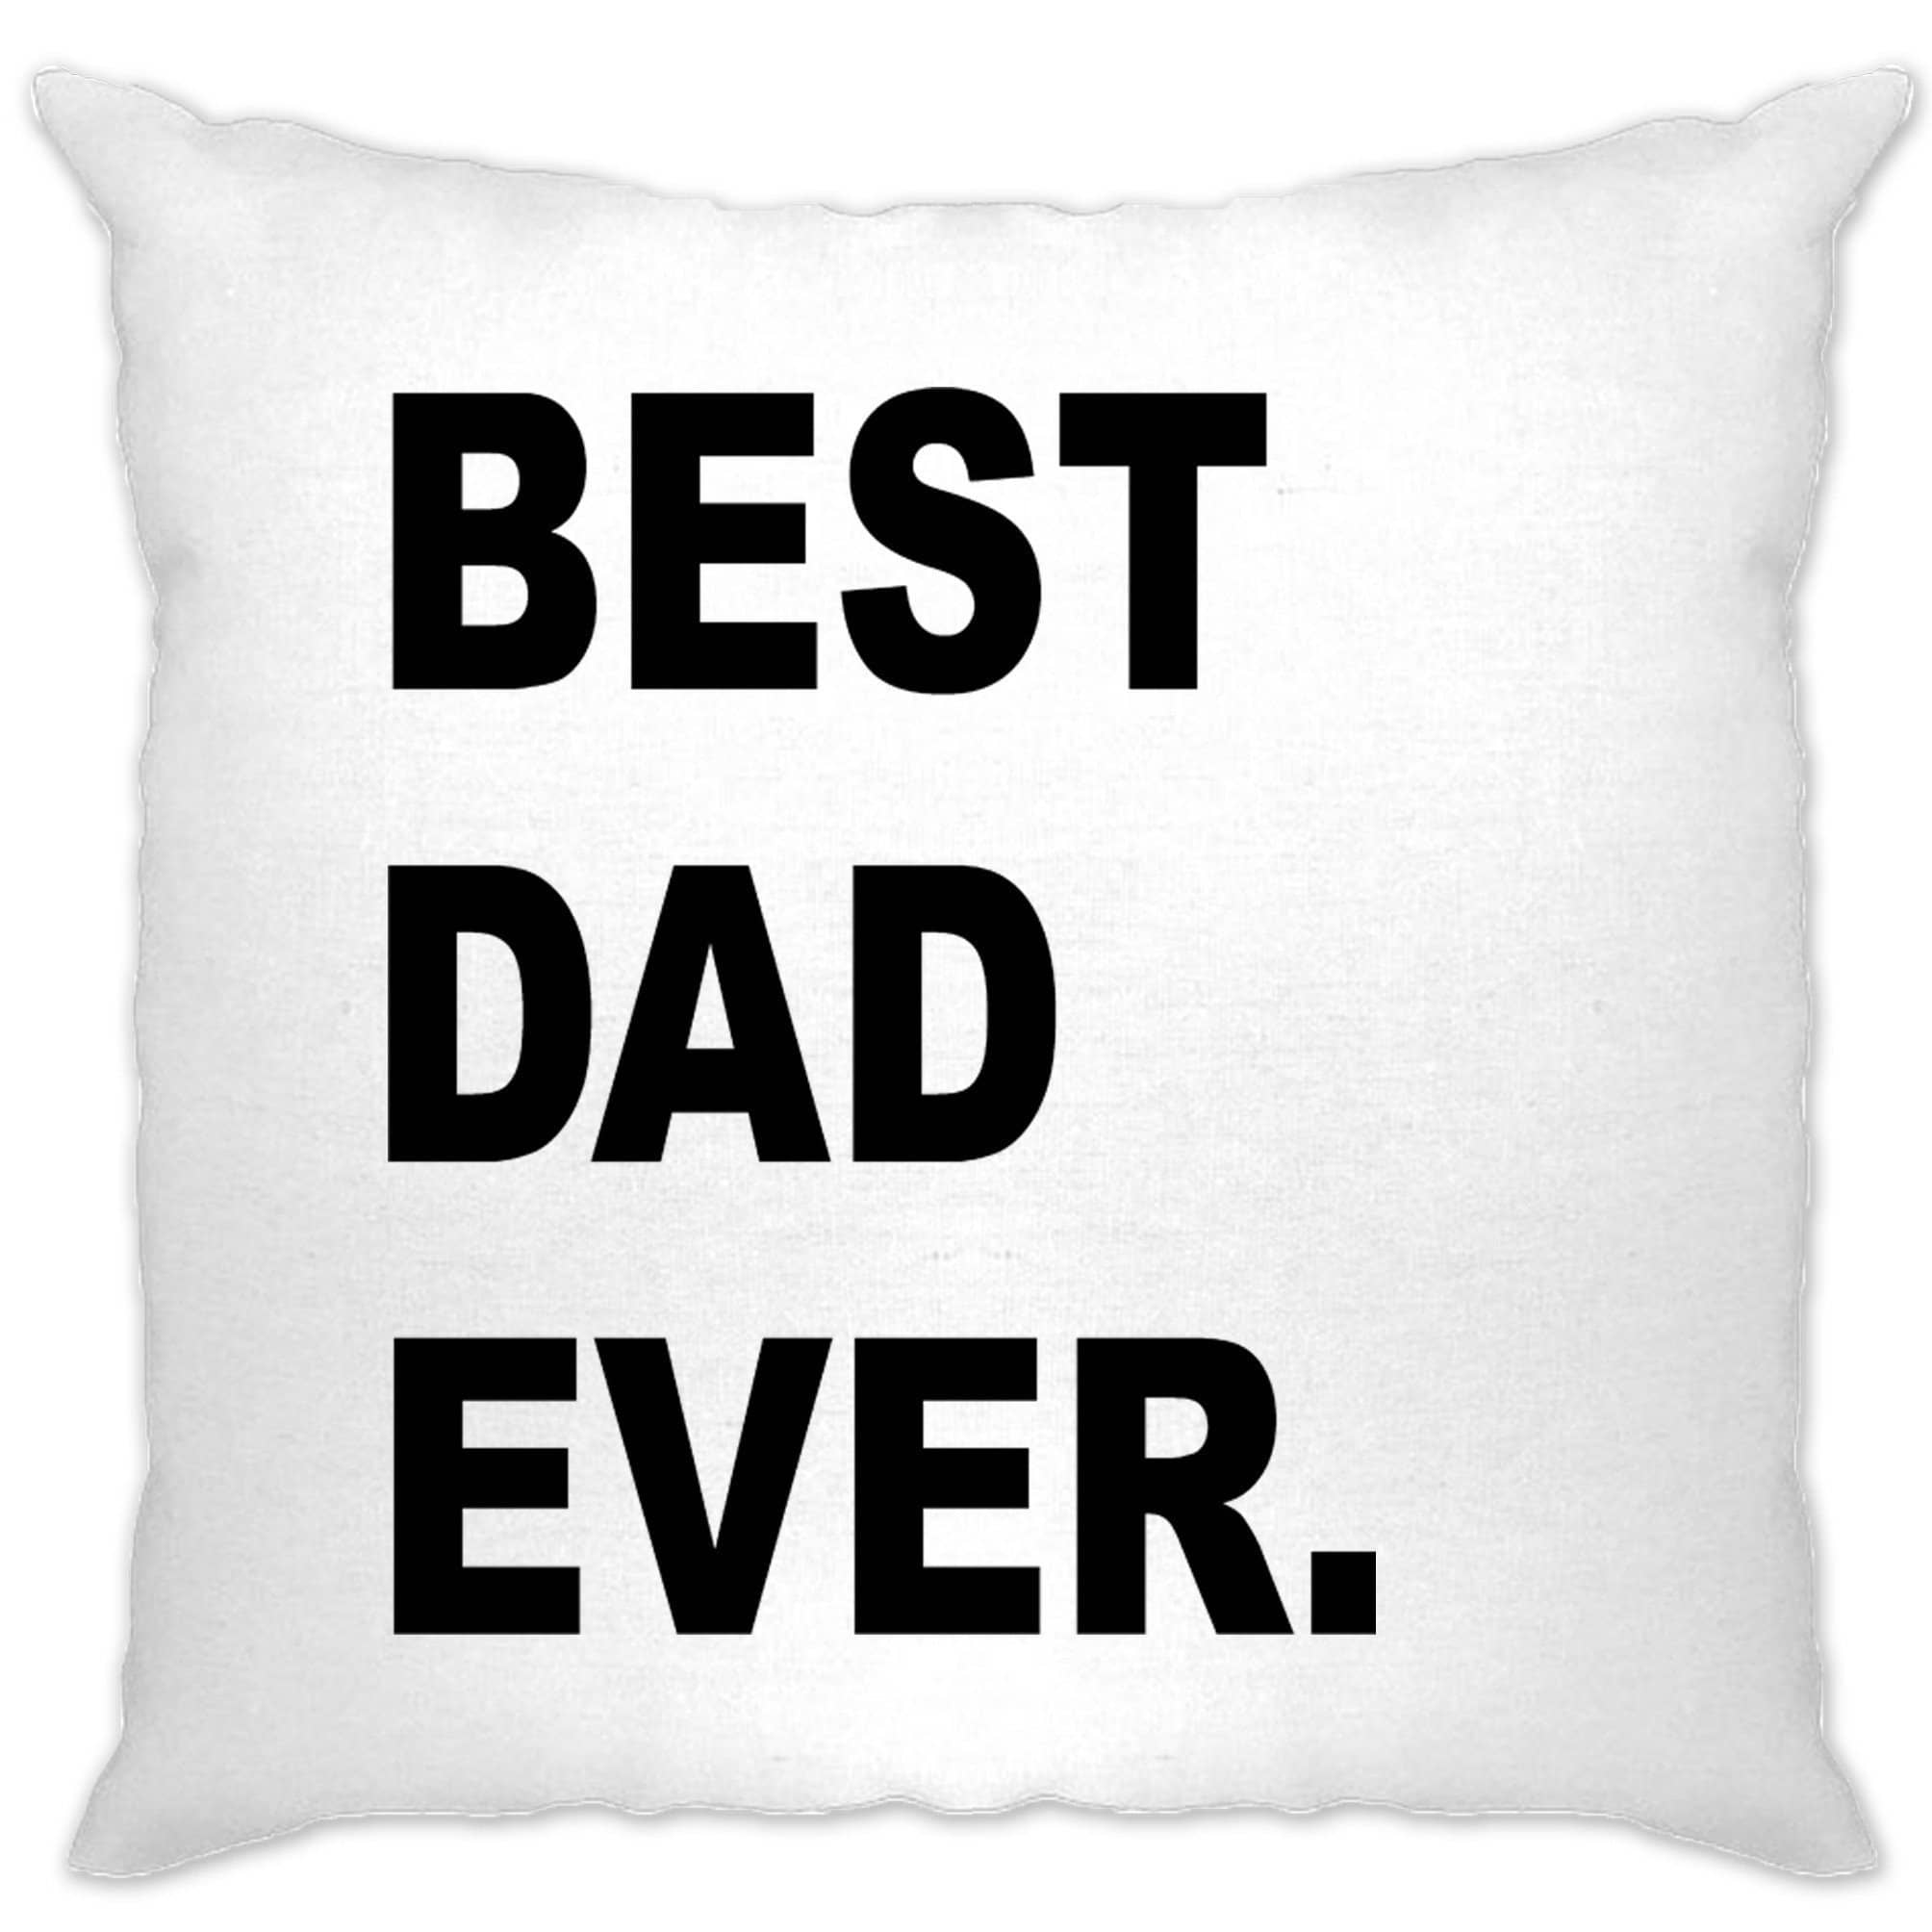 Best Dad Ever Cushion Cover Parent Family Slogan